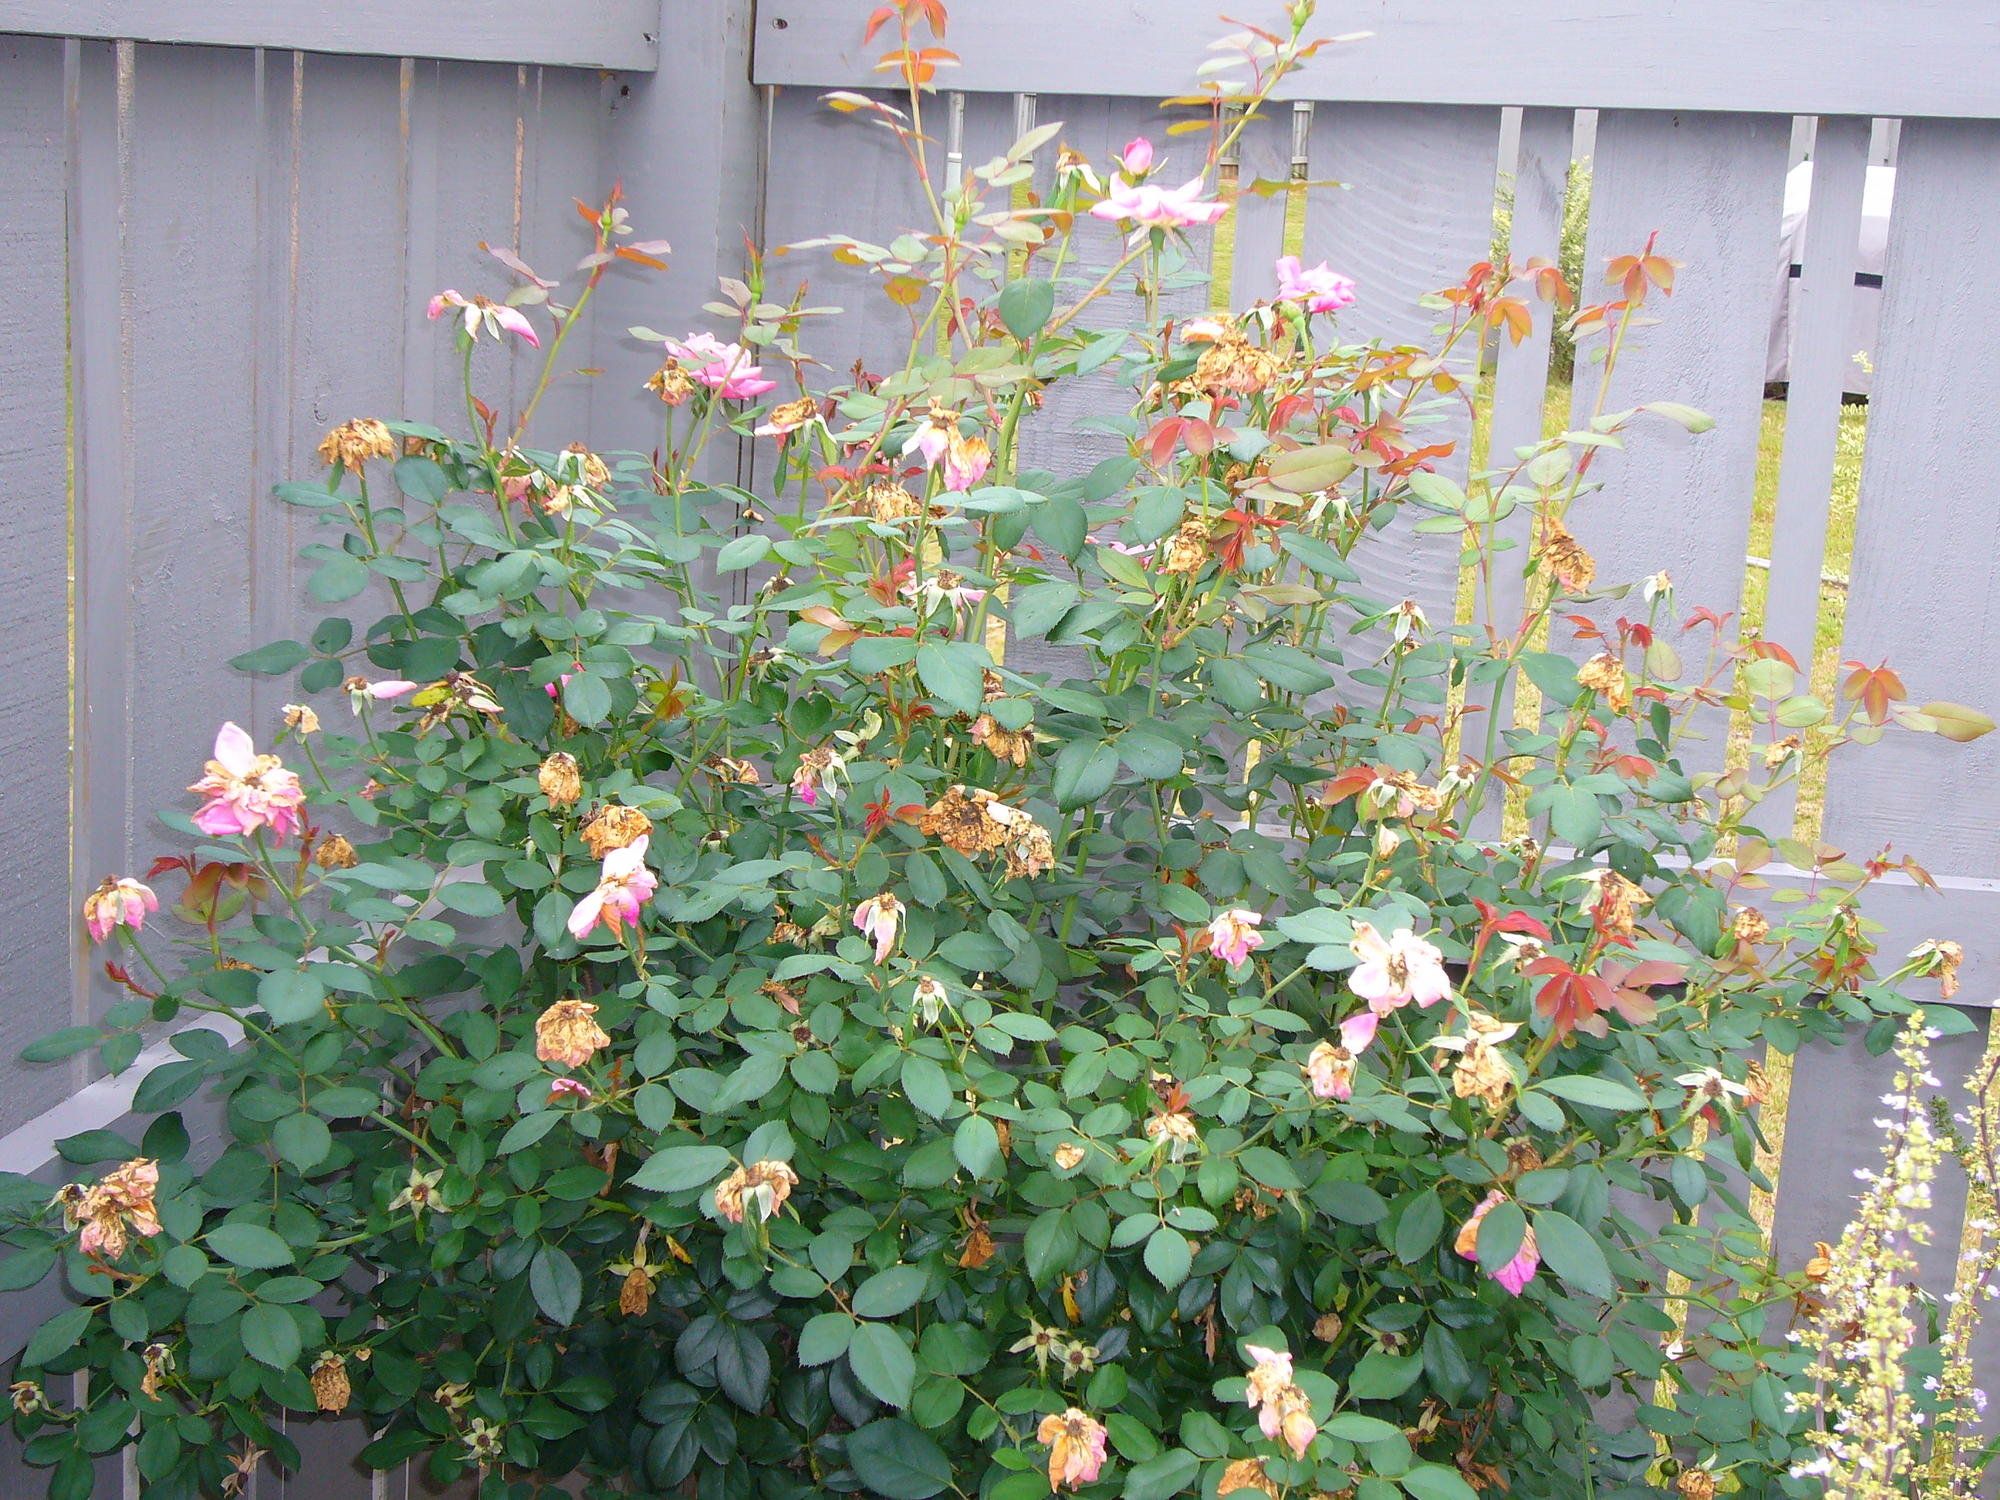 How to trim a rose bush - Knock Out Roses Need Tips And When To Prune Them Flower Growing Garden Trees Grass Lawn Flowers Irrigation Landscaping City Data Forum